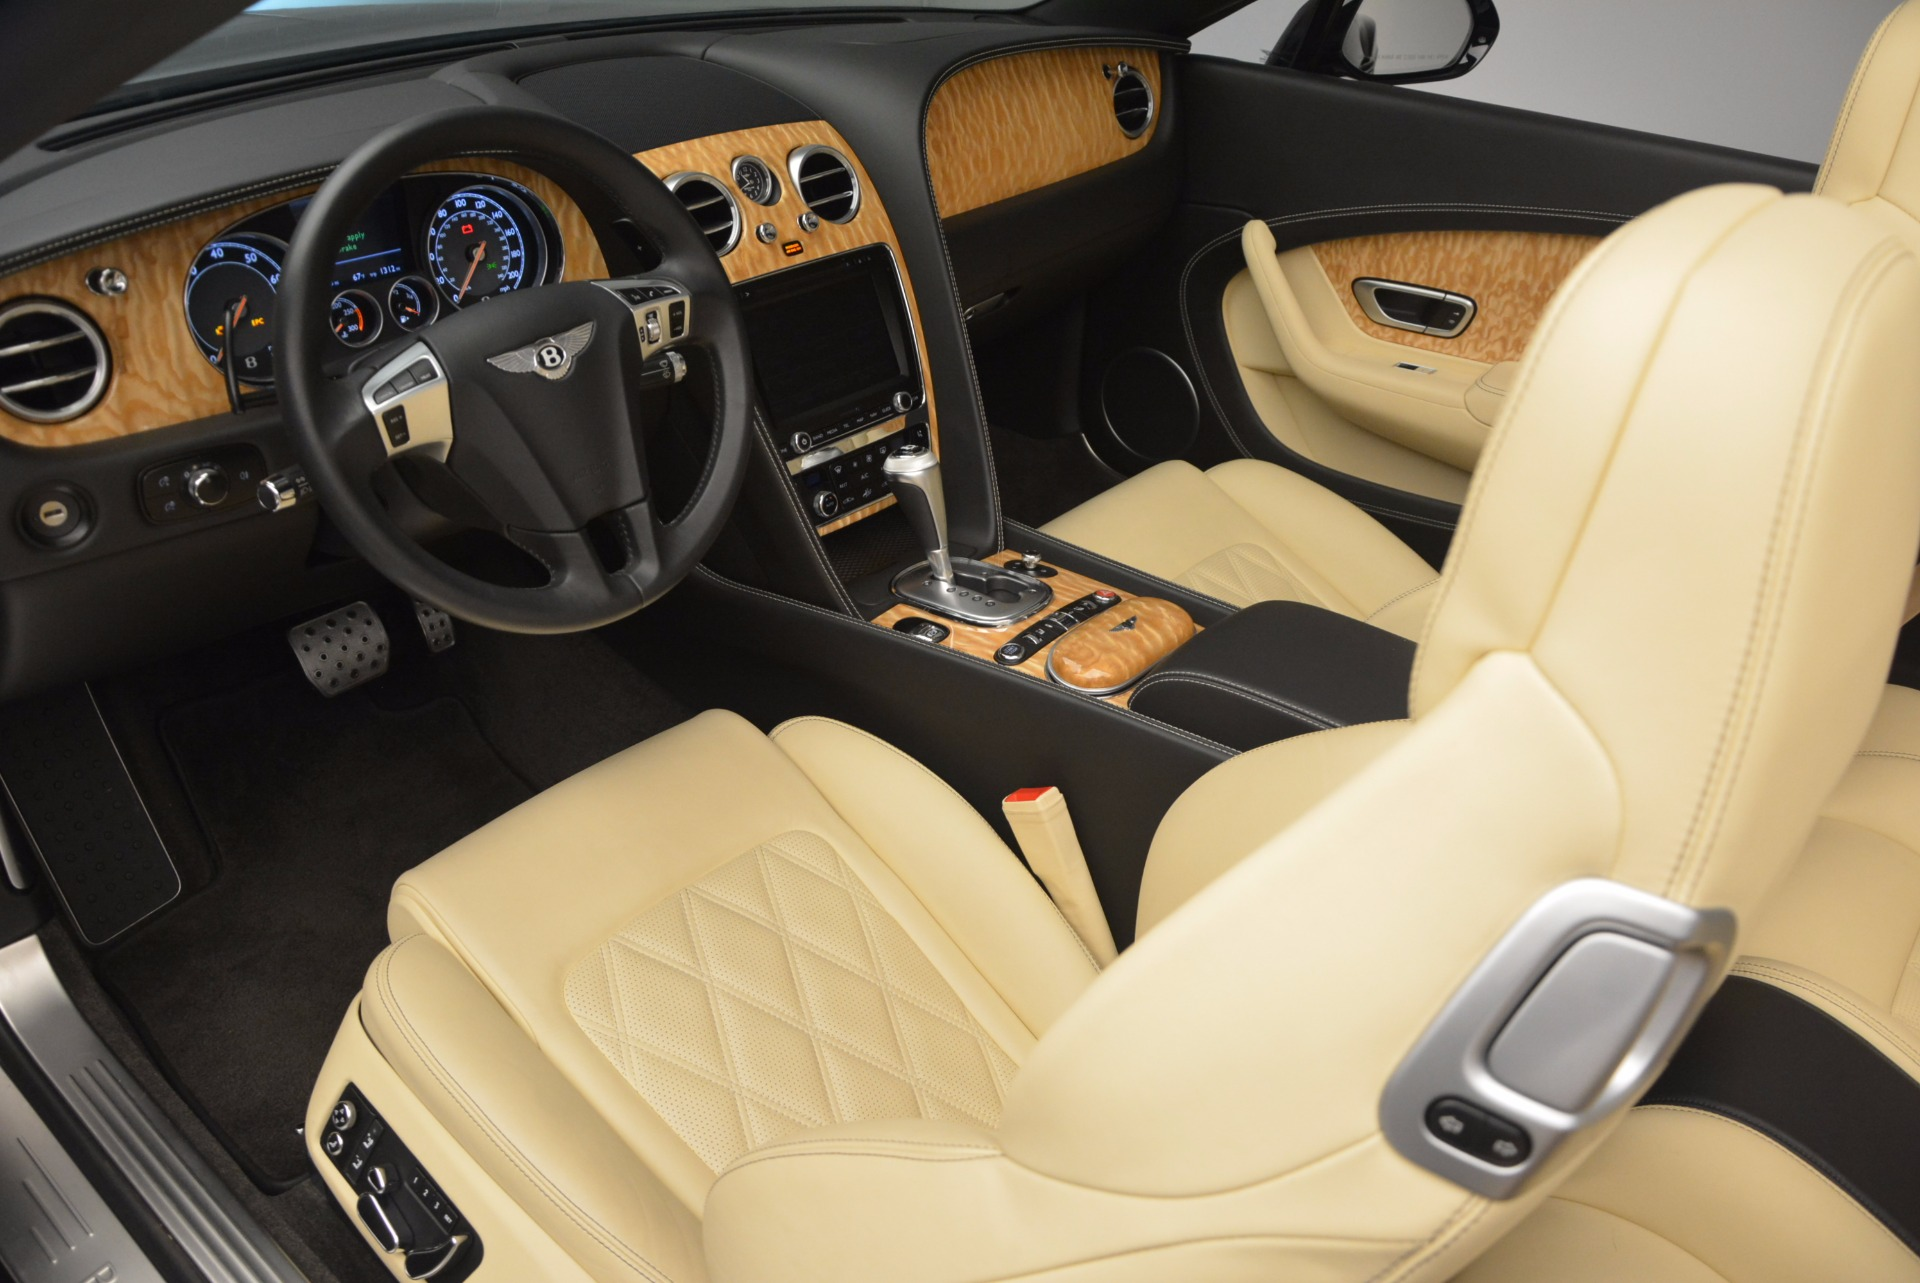 Used 2013 Bentley Continental GT V8 For Sale In Greenwich, CT. Alfa Romeo of Greenwich, 7144 945_p37